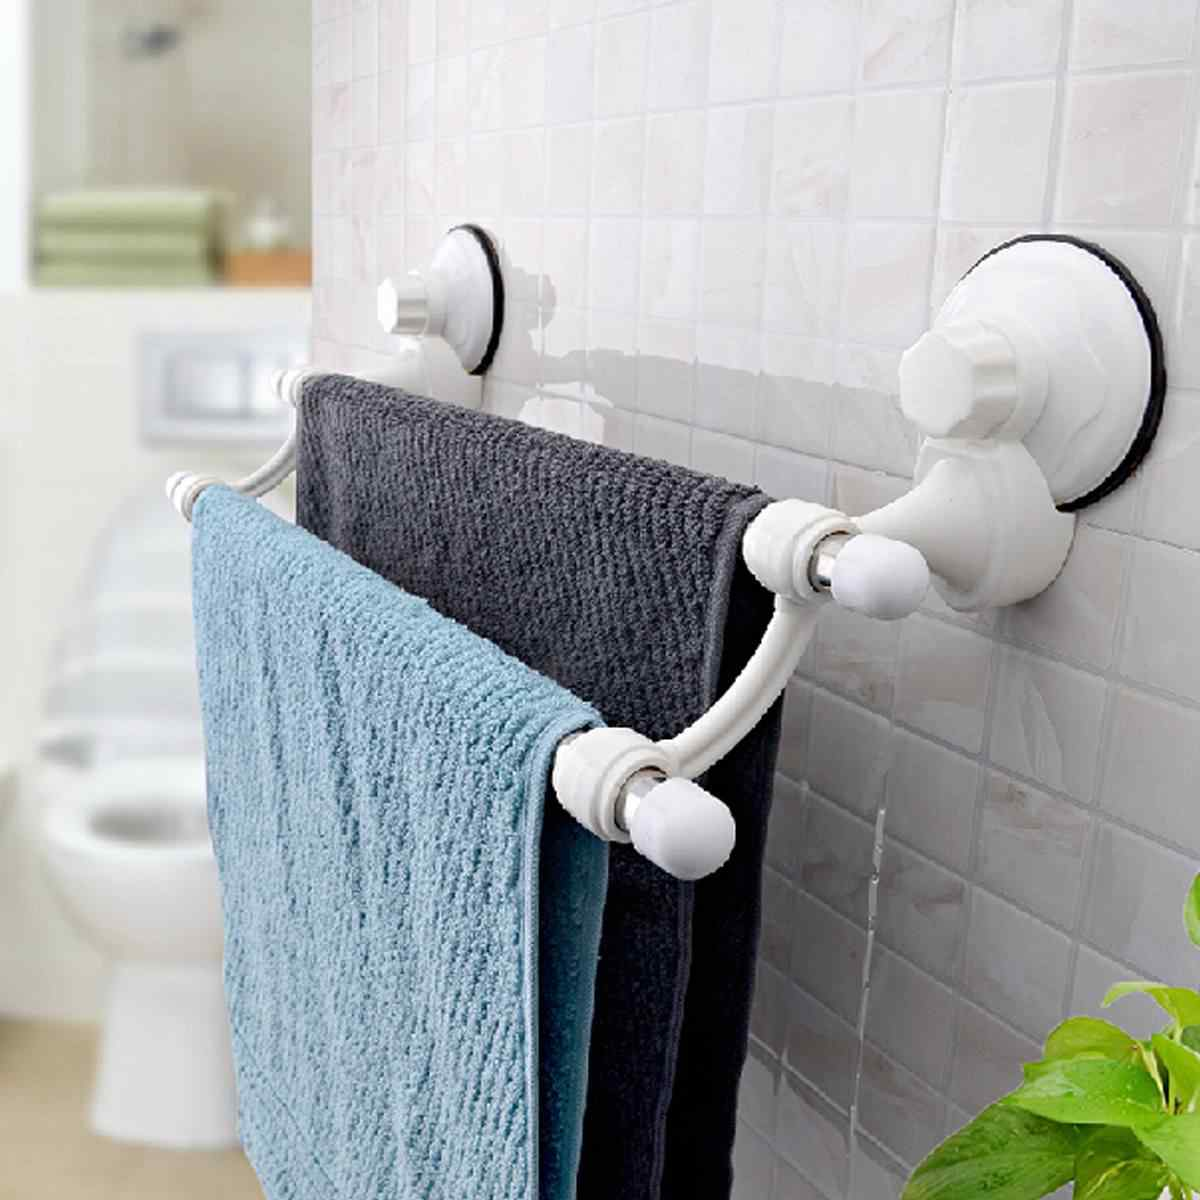 18.5 inch Double Bars Suction Cup Towels Rail Holder Storage Racks Wall Mounted Stainless Steel Bathroom Organizer Kitchen Hotel